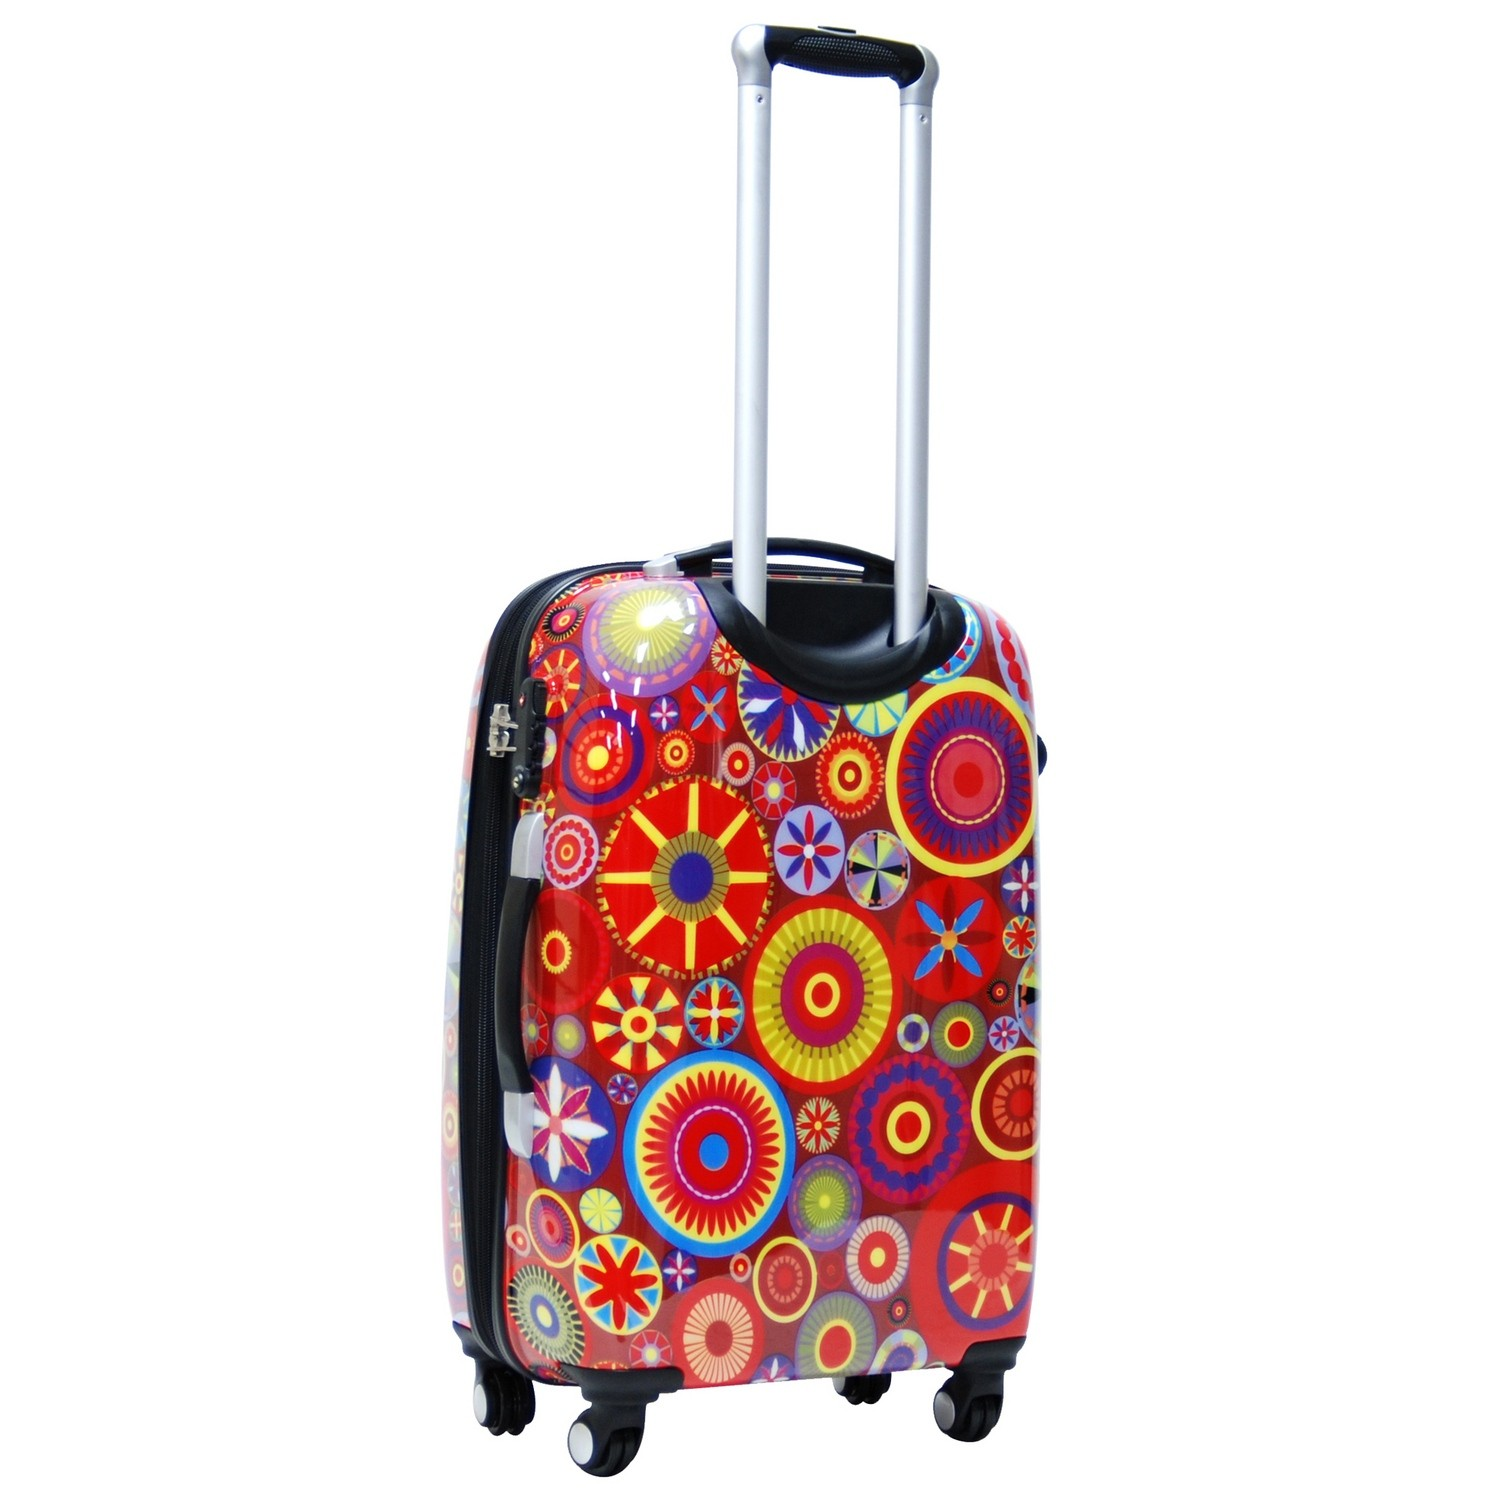 Calpak Lcn3000 Carnival 3pc 4wd Rolling Luggage Set 360